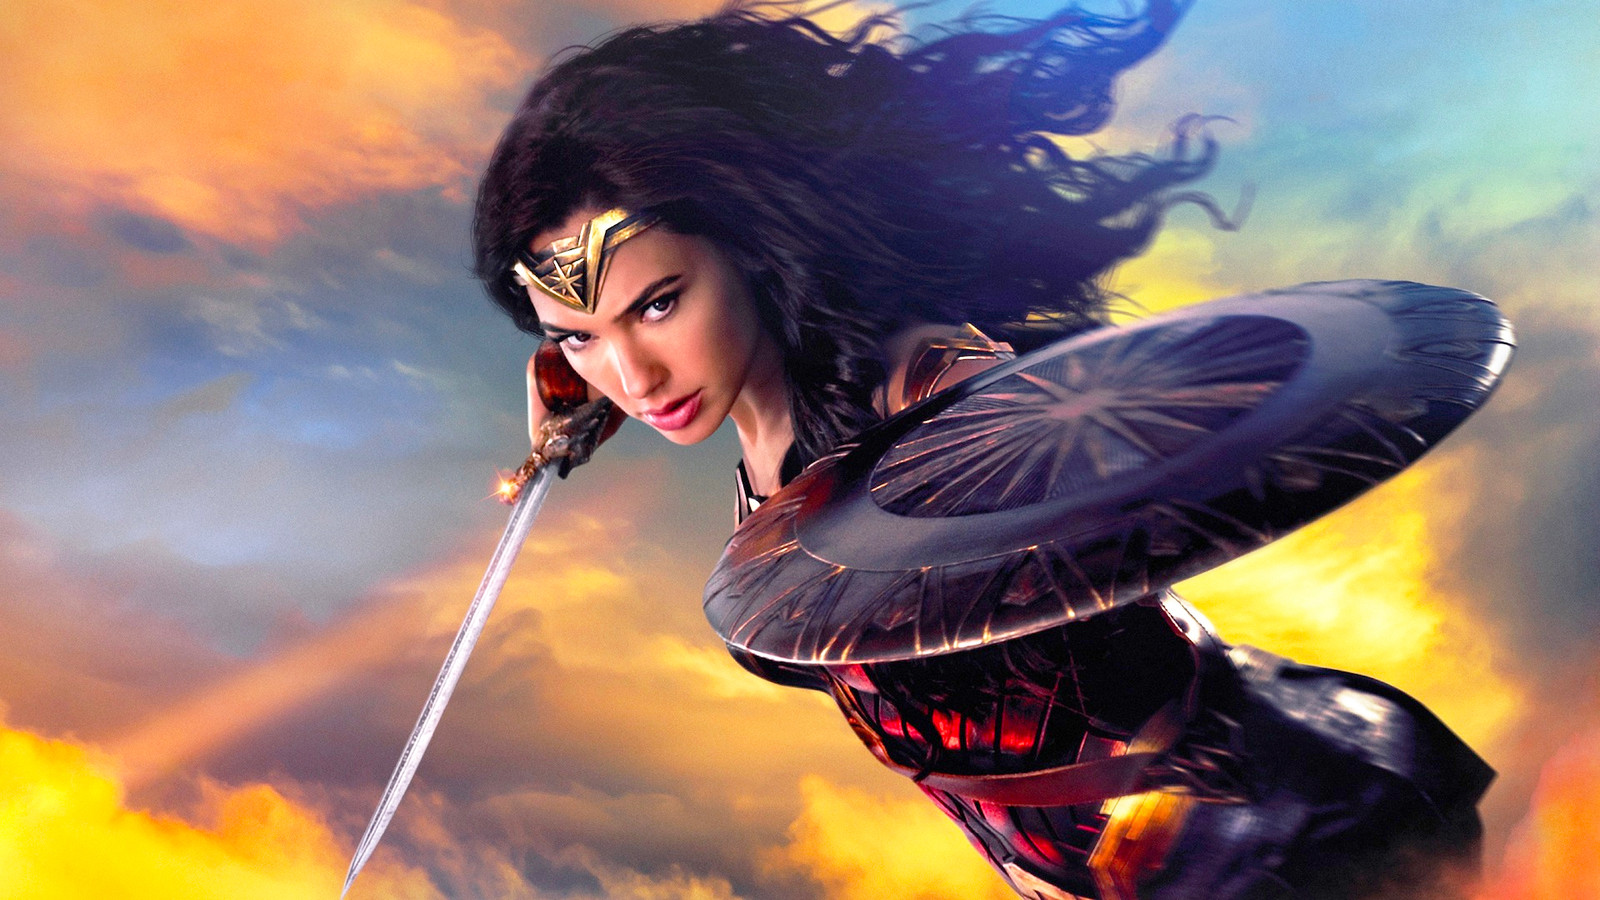 Gal Gadot announces seven-month delay in Wonder Woman 2